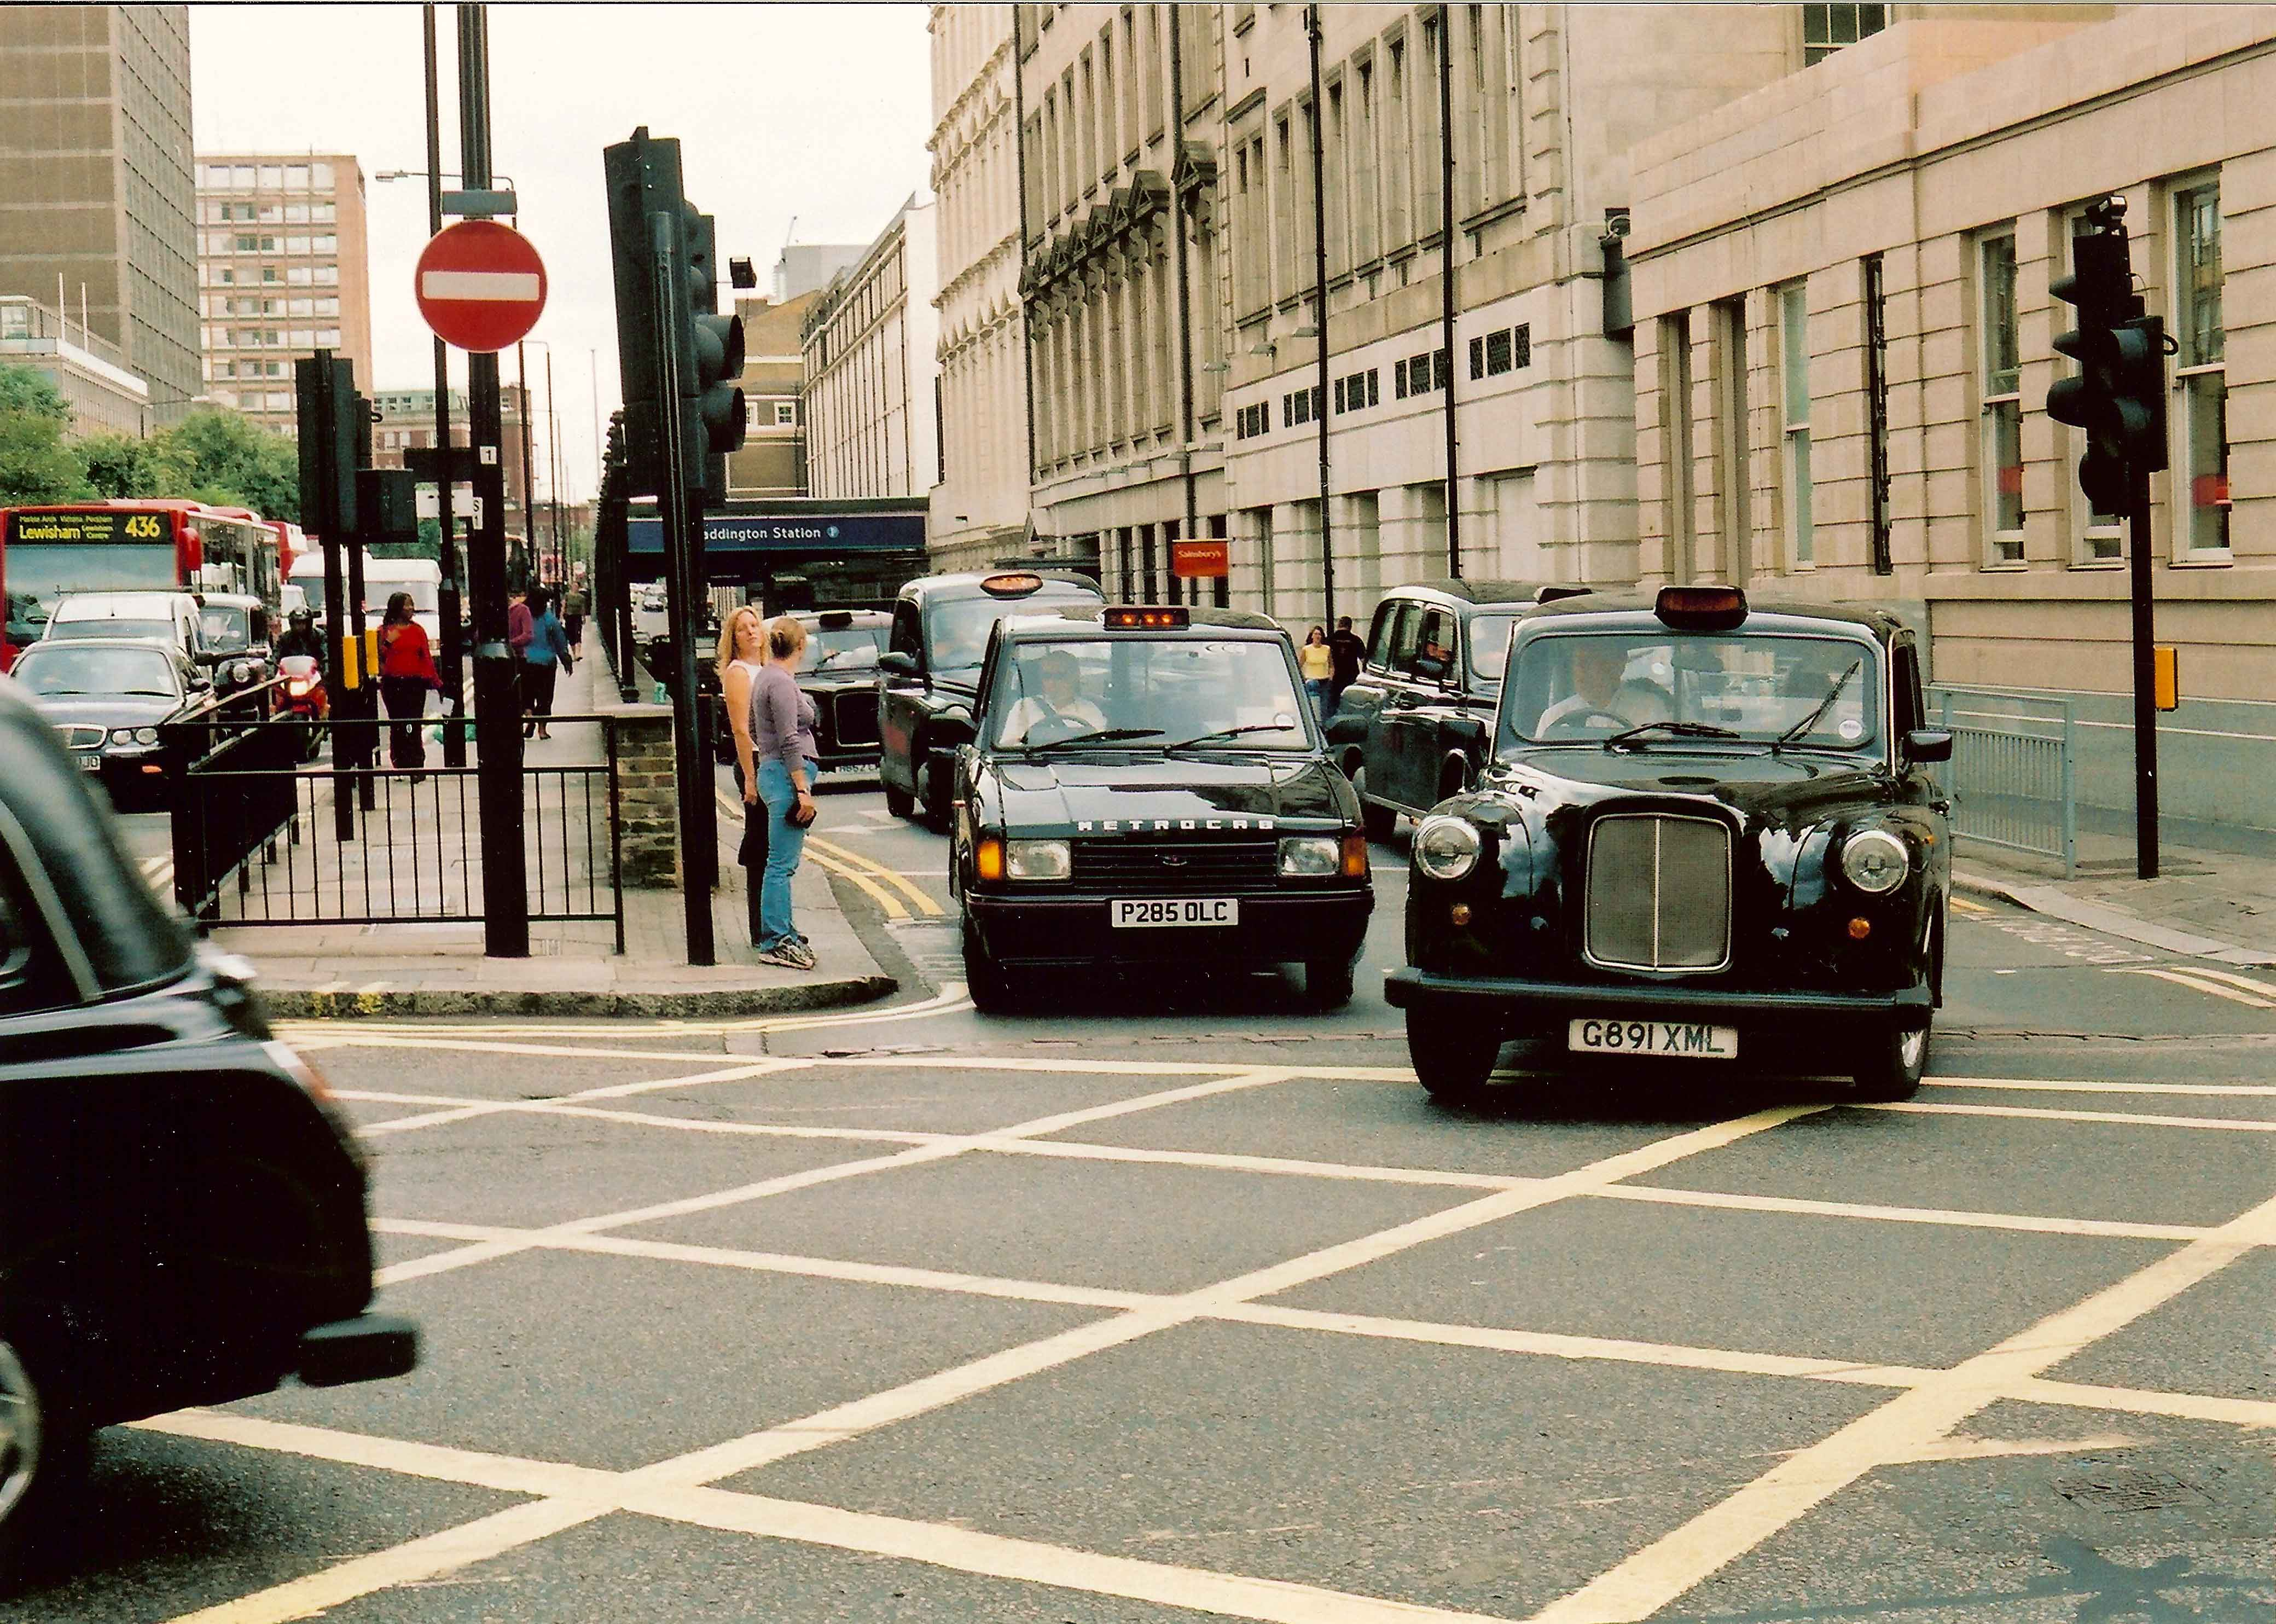 Fairway and Metrocab at Paddington Station